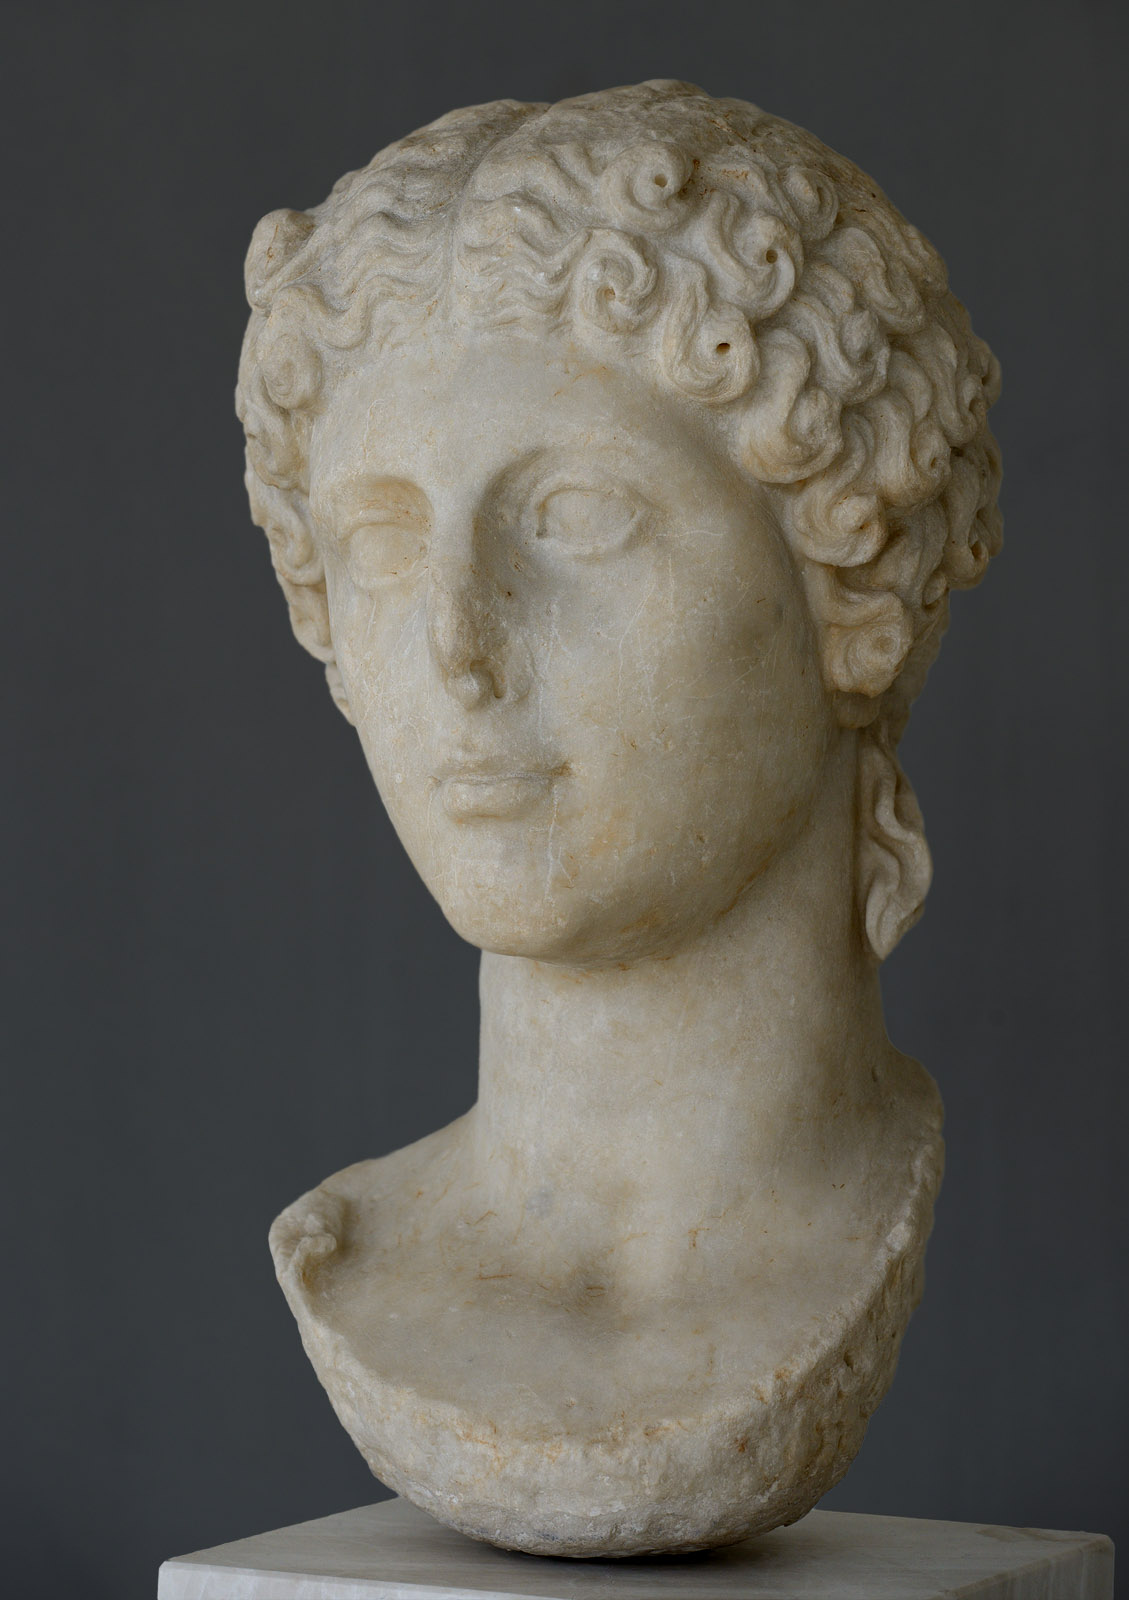 Agrippina the Younger, the wife of Claudius. Marble. 41—54 CE. Inv. No. NAM 3554 / EAM 3554. Athens, New Acropolis Museum